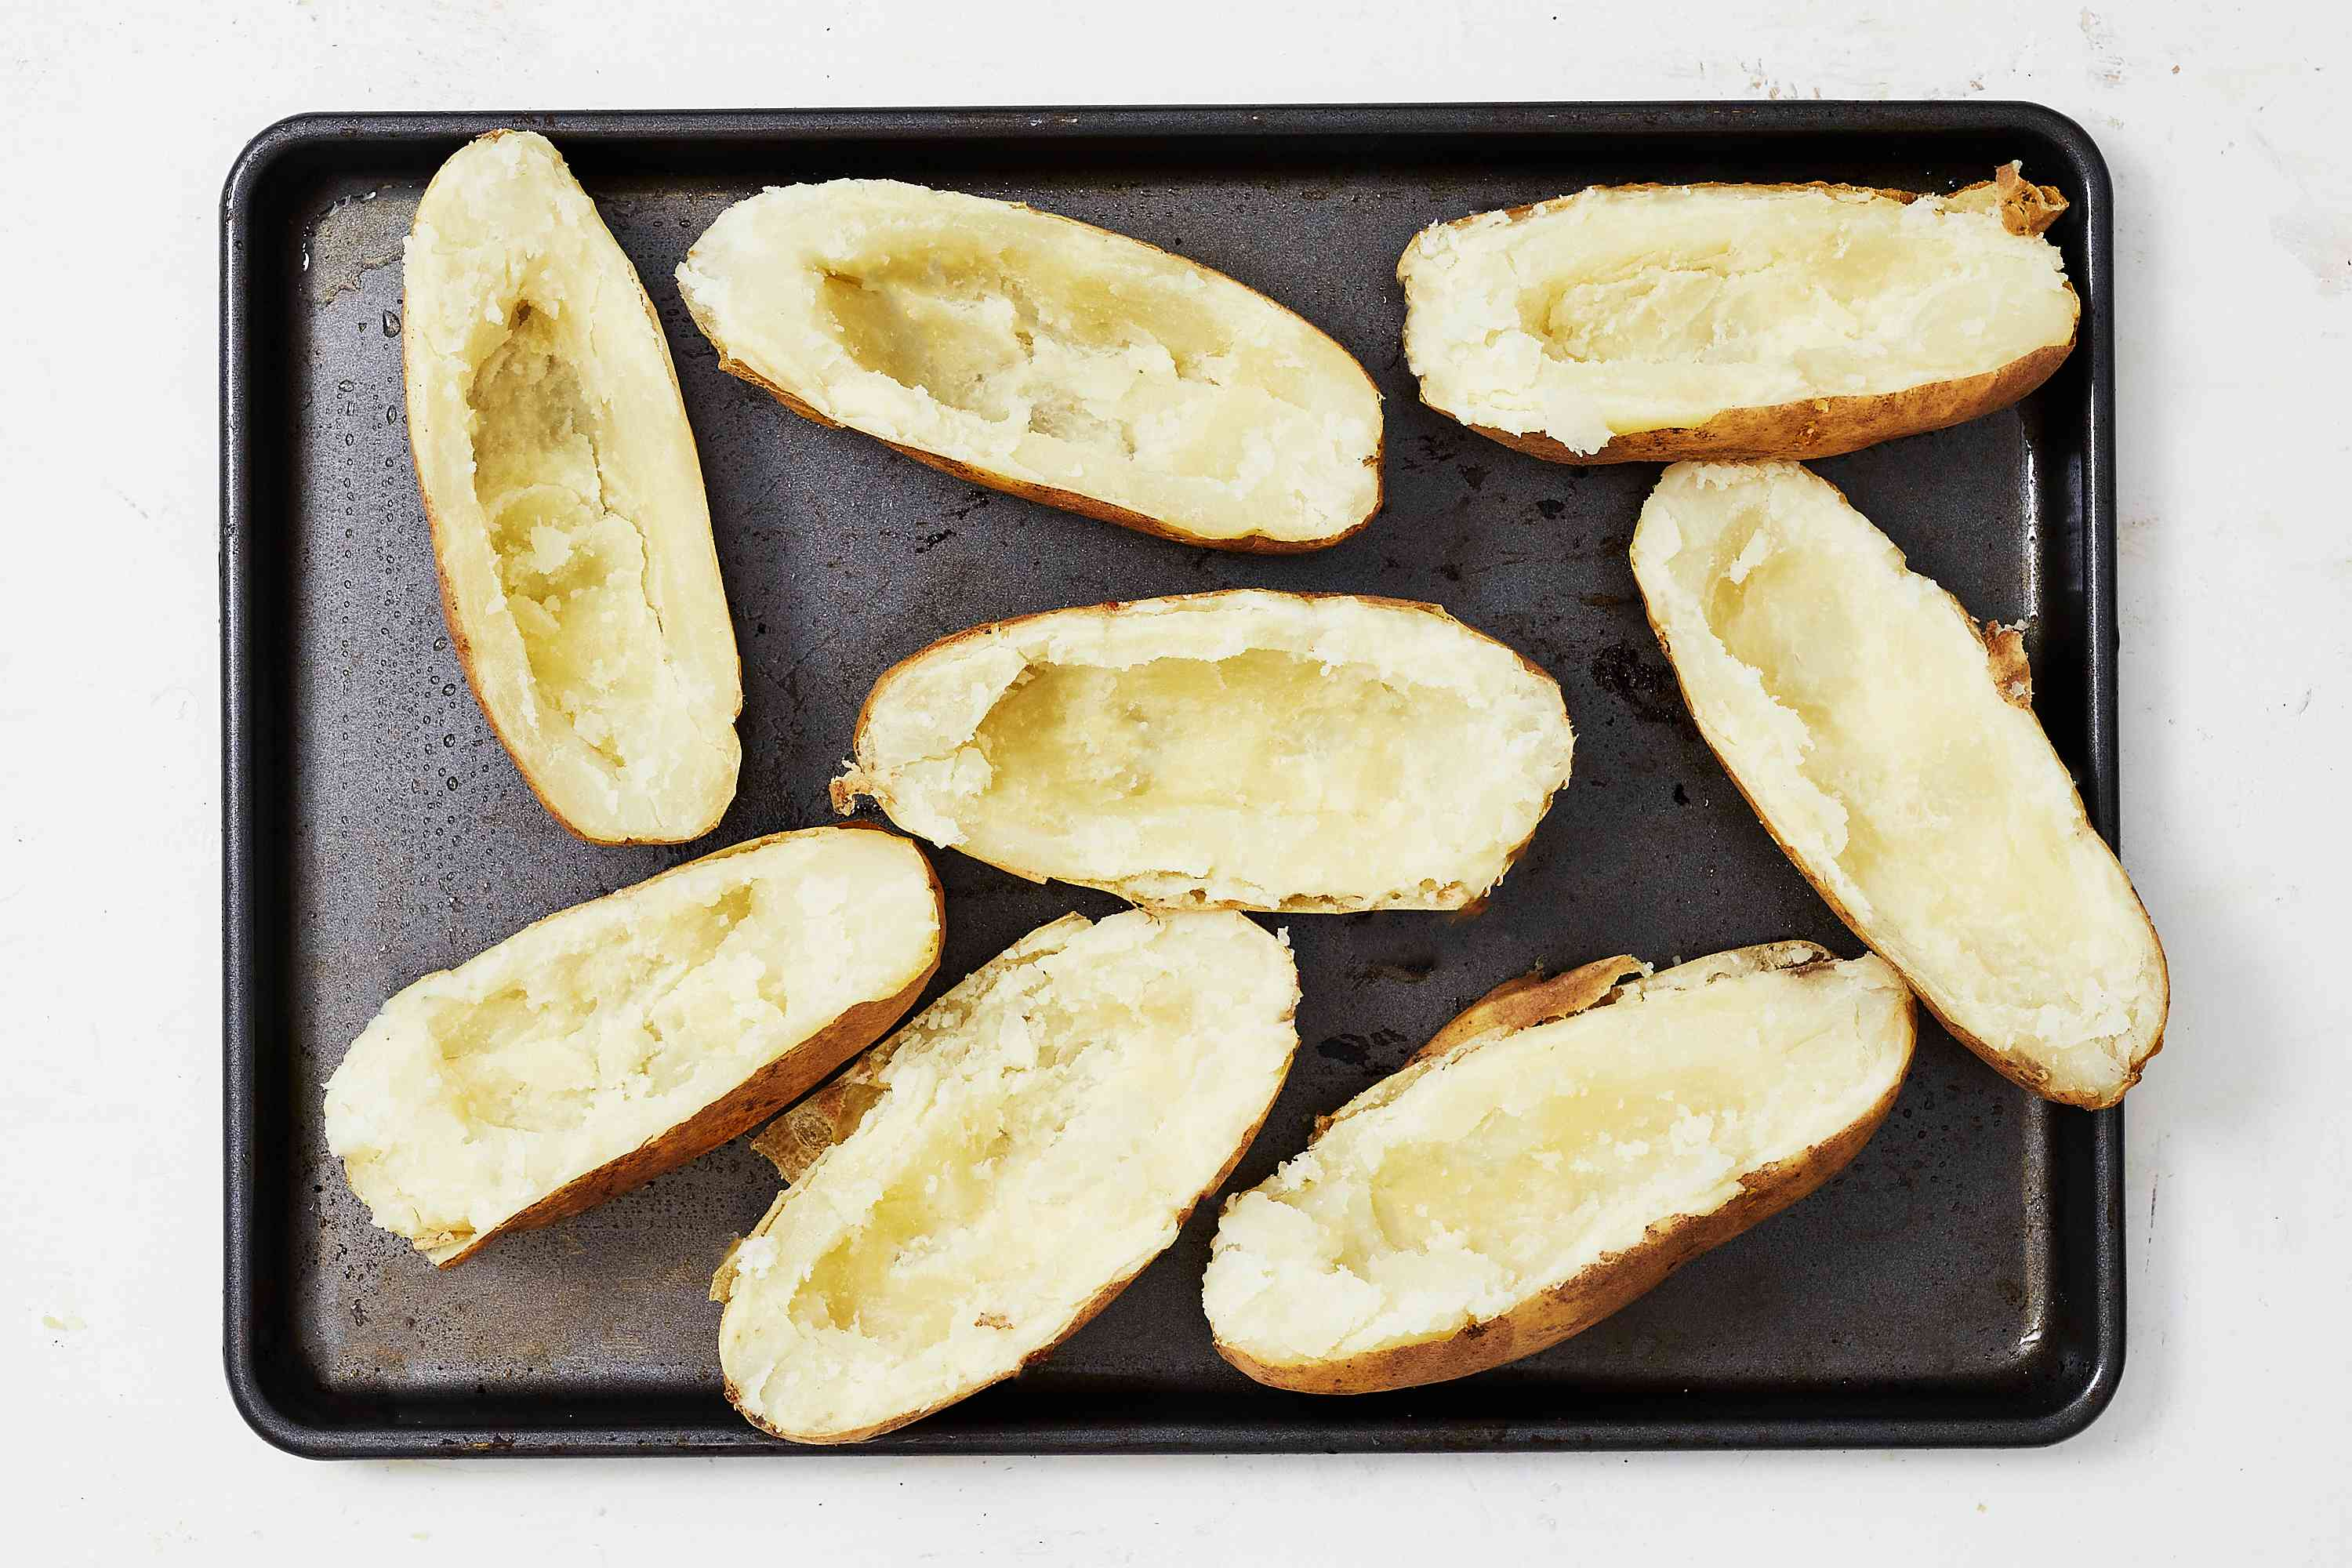 Scoop out the potato, leaving the skins intact on a baking sheet